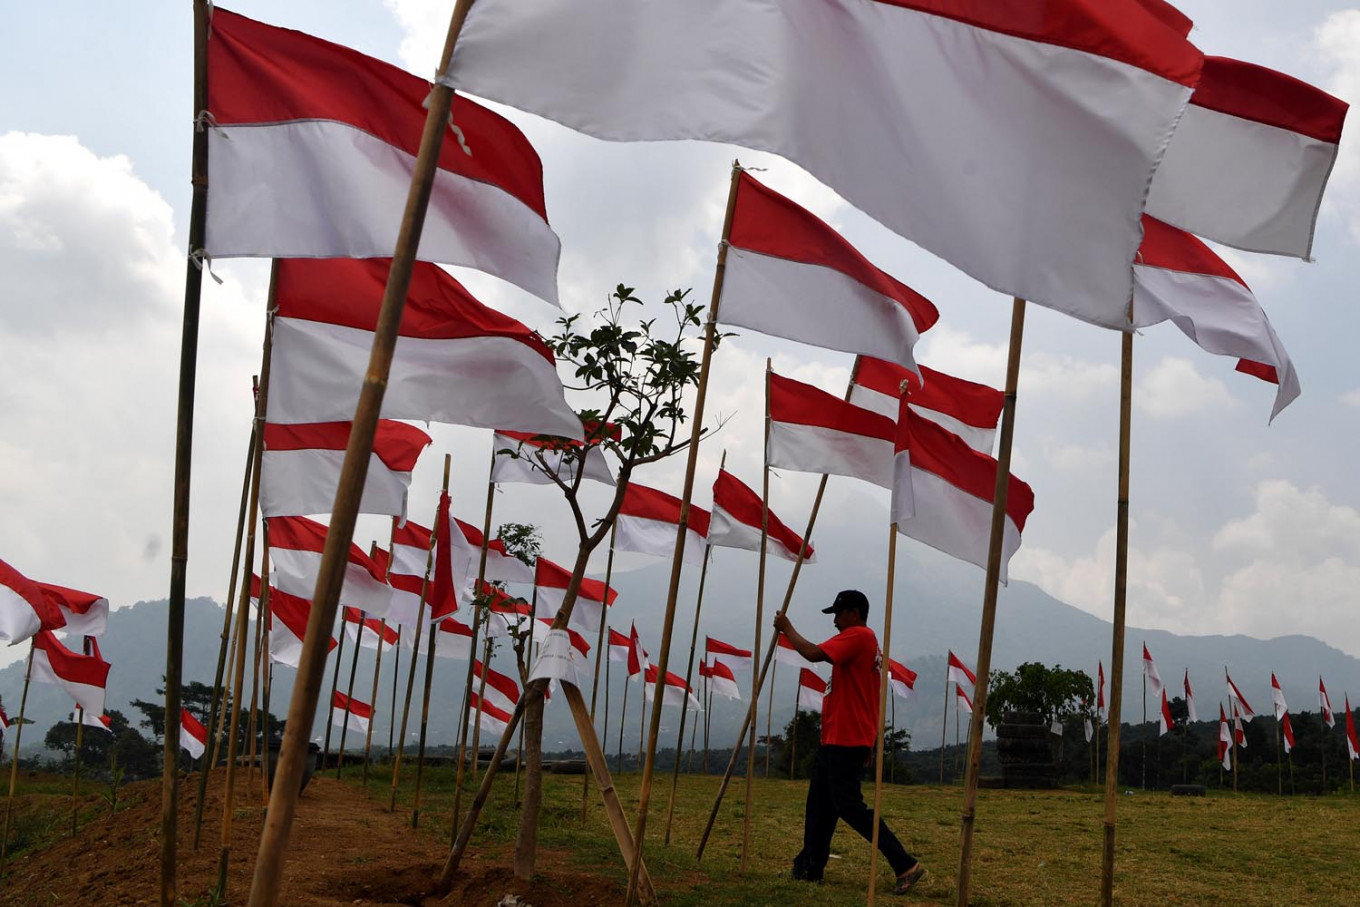 North Sumatra woman arrested for allegedly defaming national flag, president